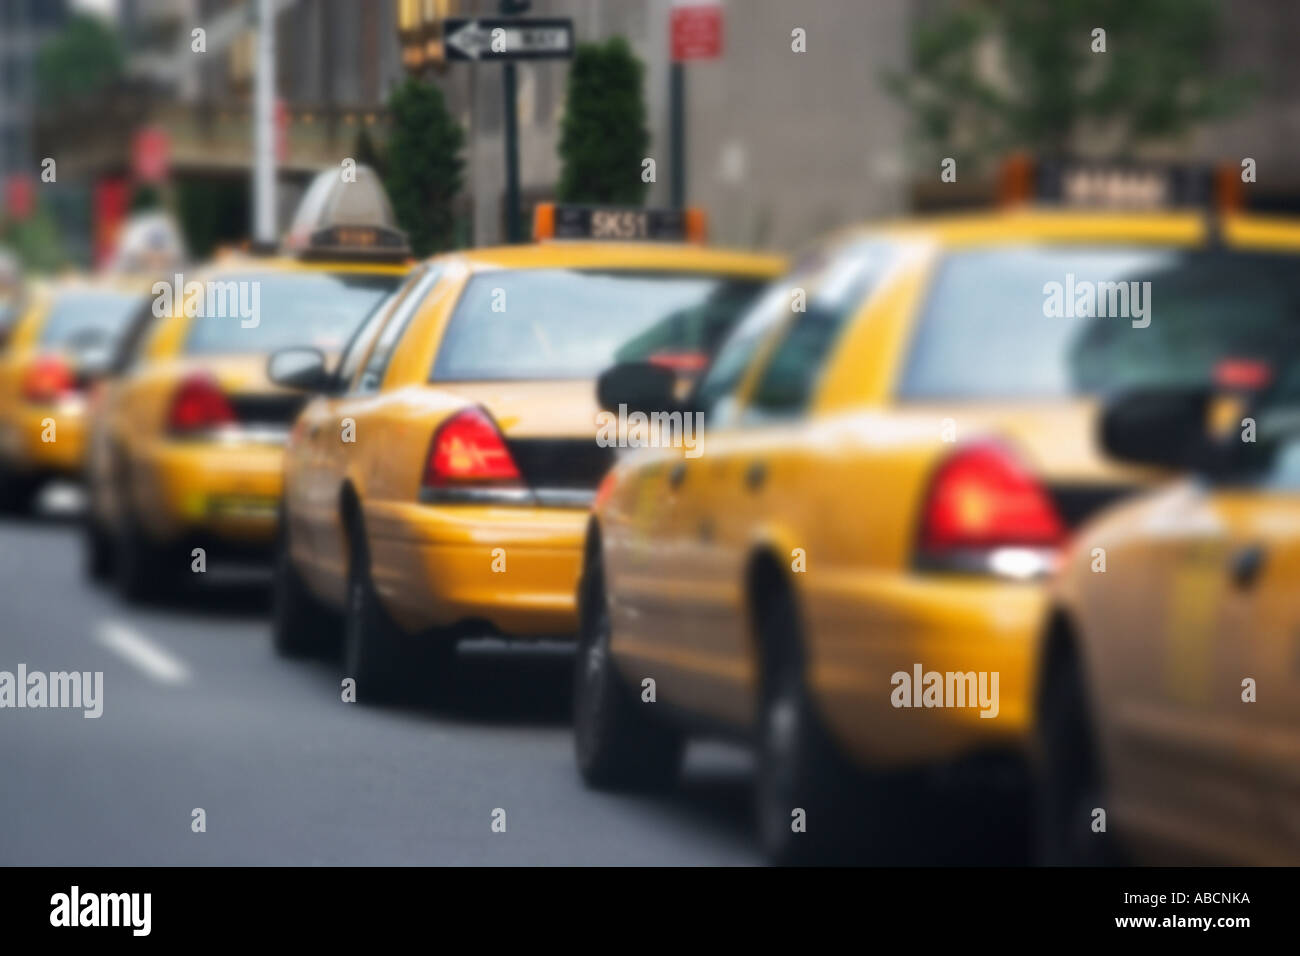 Queue of yellow taxi cabs - Stock Image